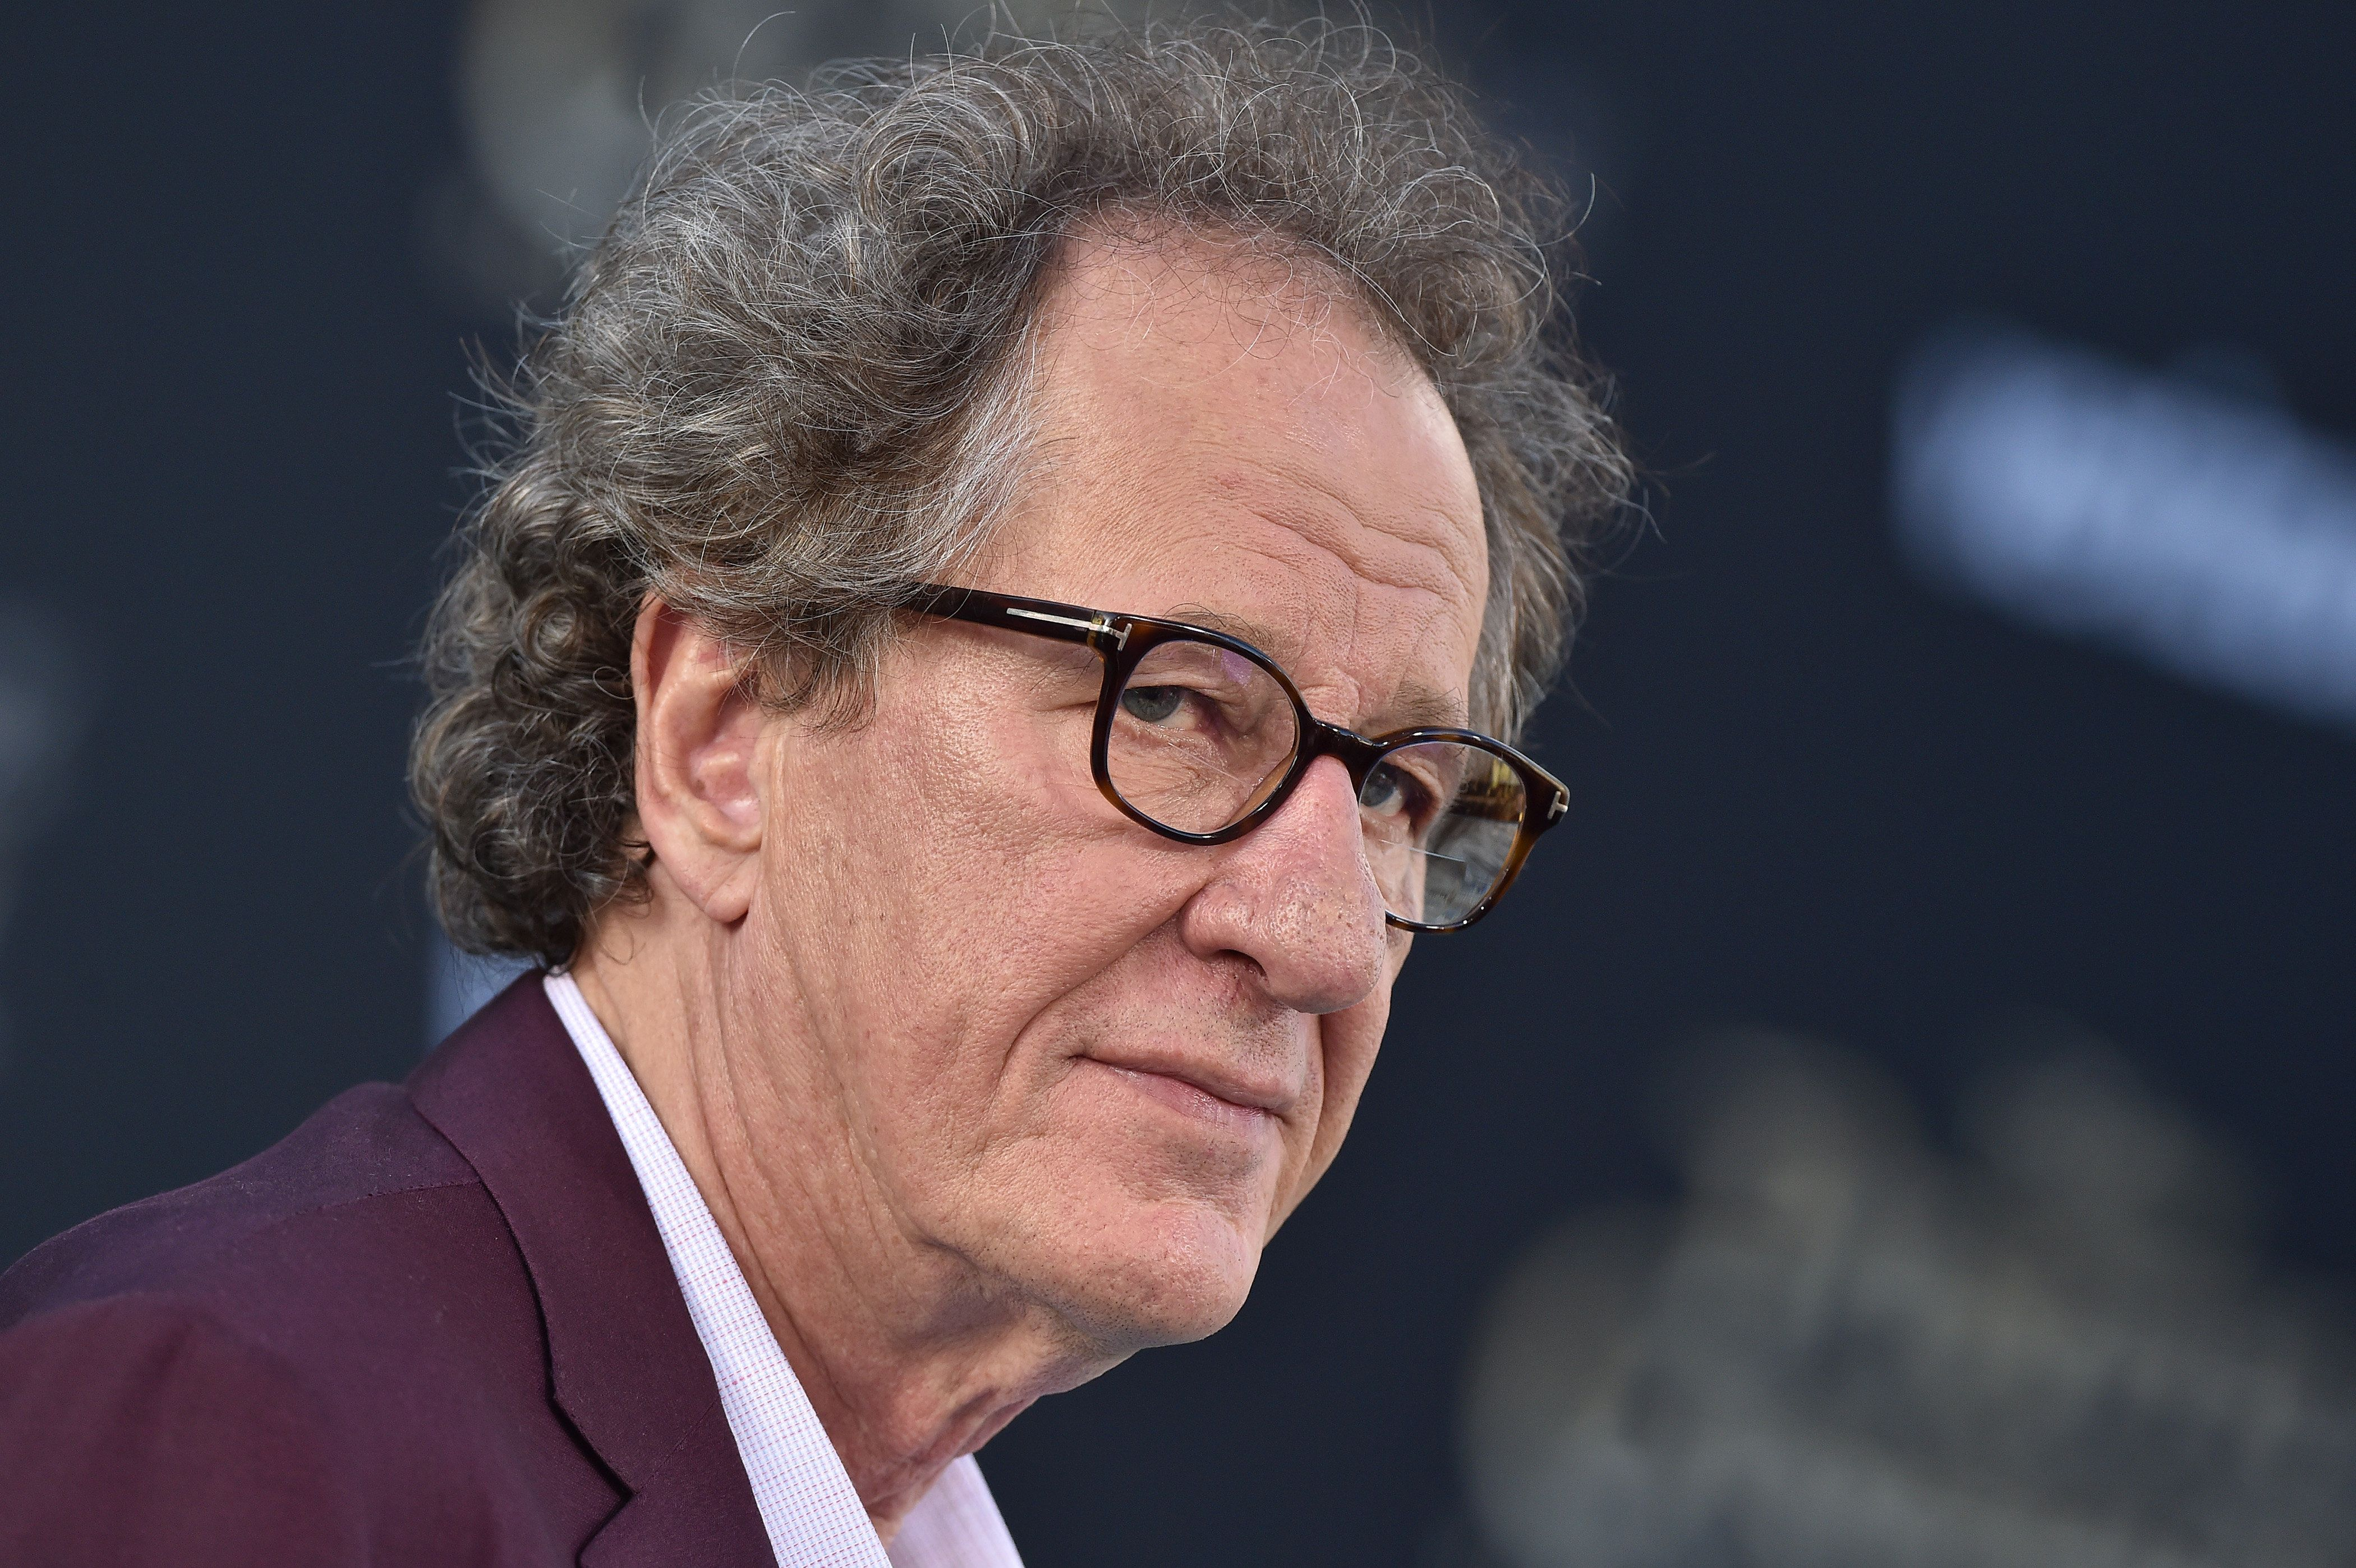 Geoffrey Rush Steps Down From Australian Film Academy Following Claim Of 'Inappropriate Behavior'